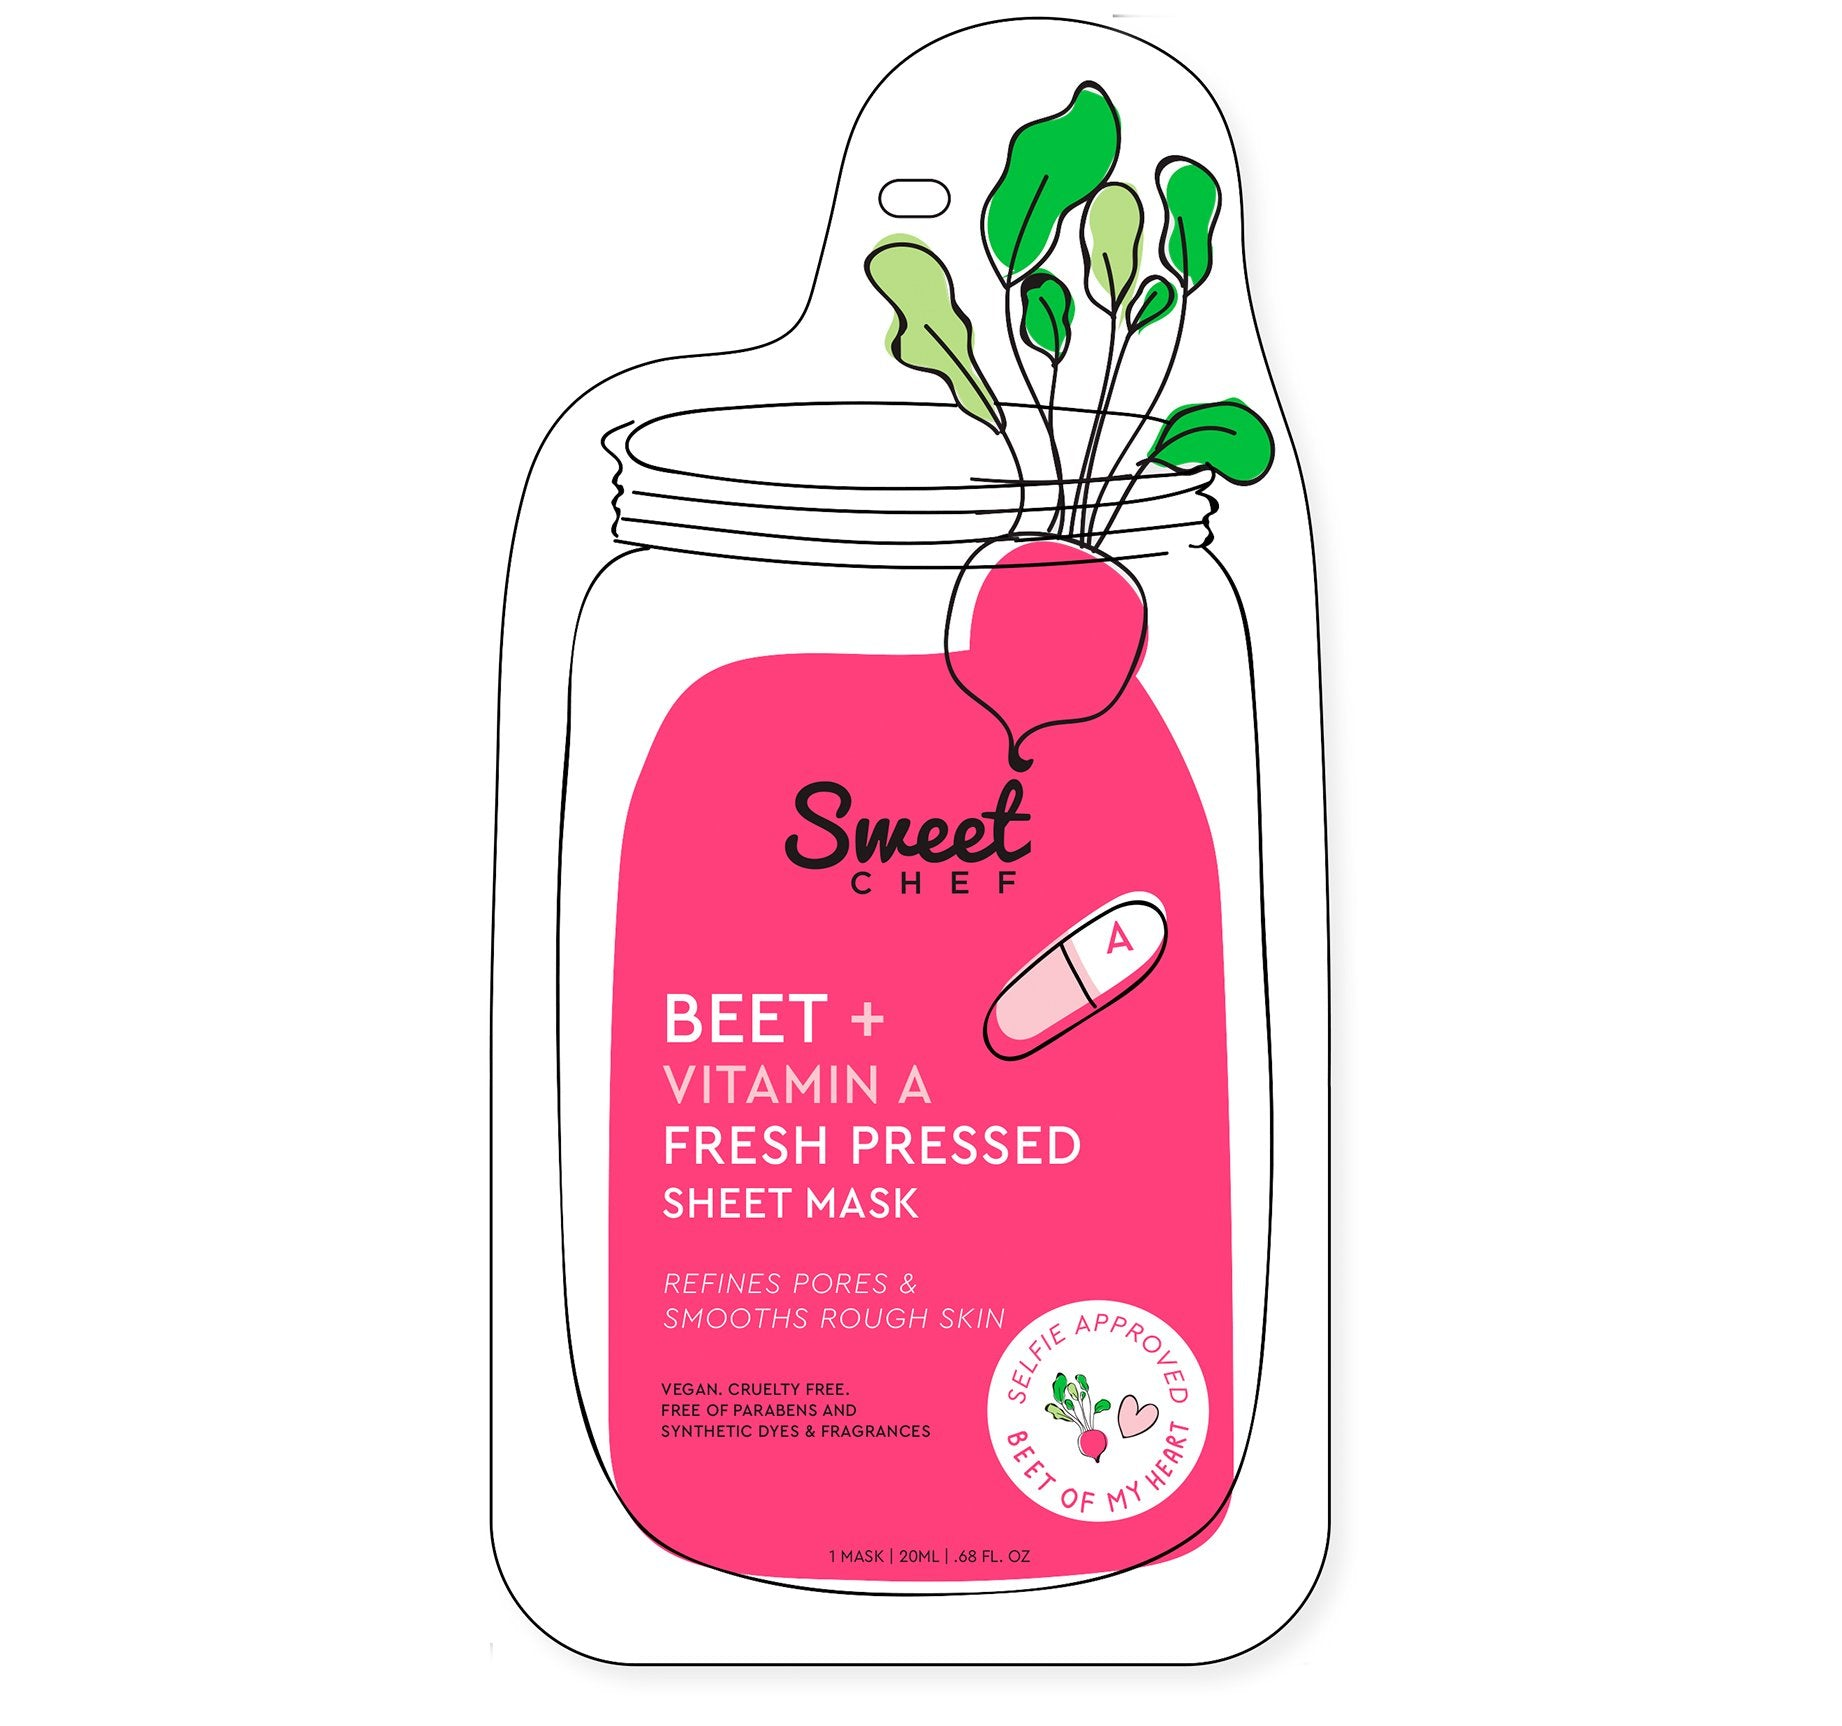 BEET + VITAMIN A FRESH PRESSED SHEET MASK, view larger image